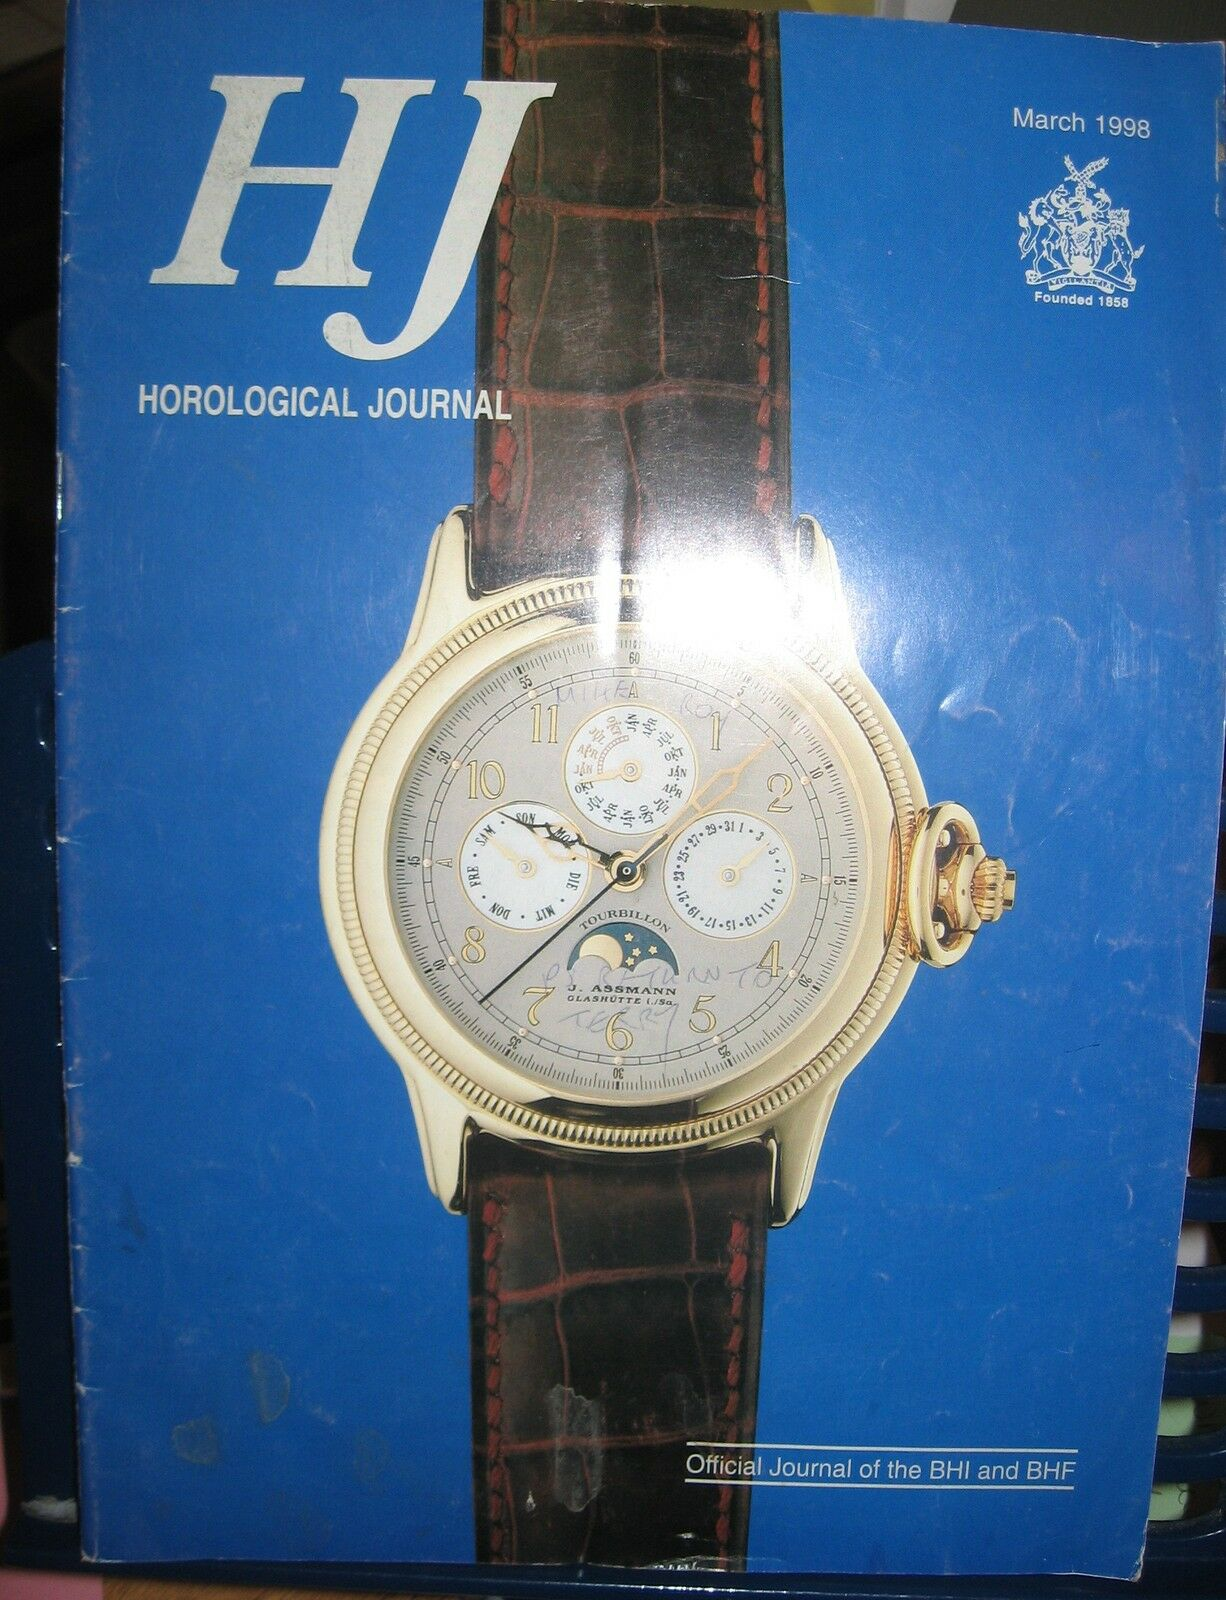 Horological Journal  March 1998 - Official Journal of the BHI and BHF